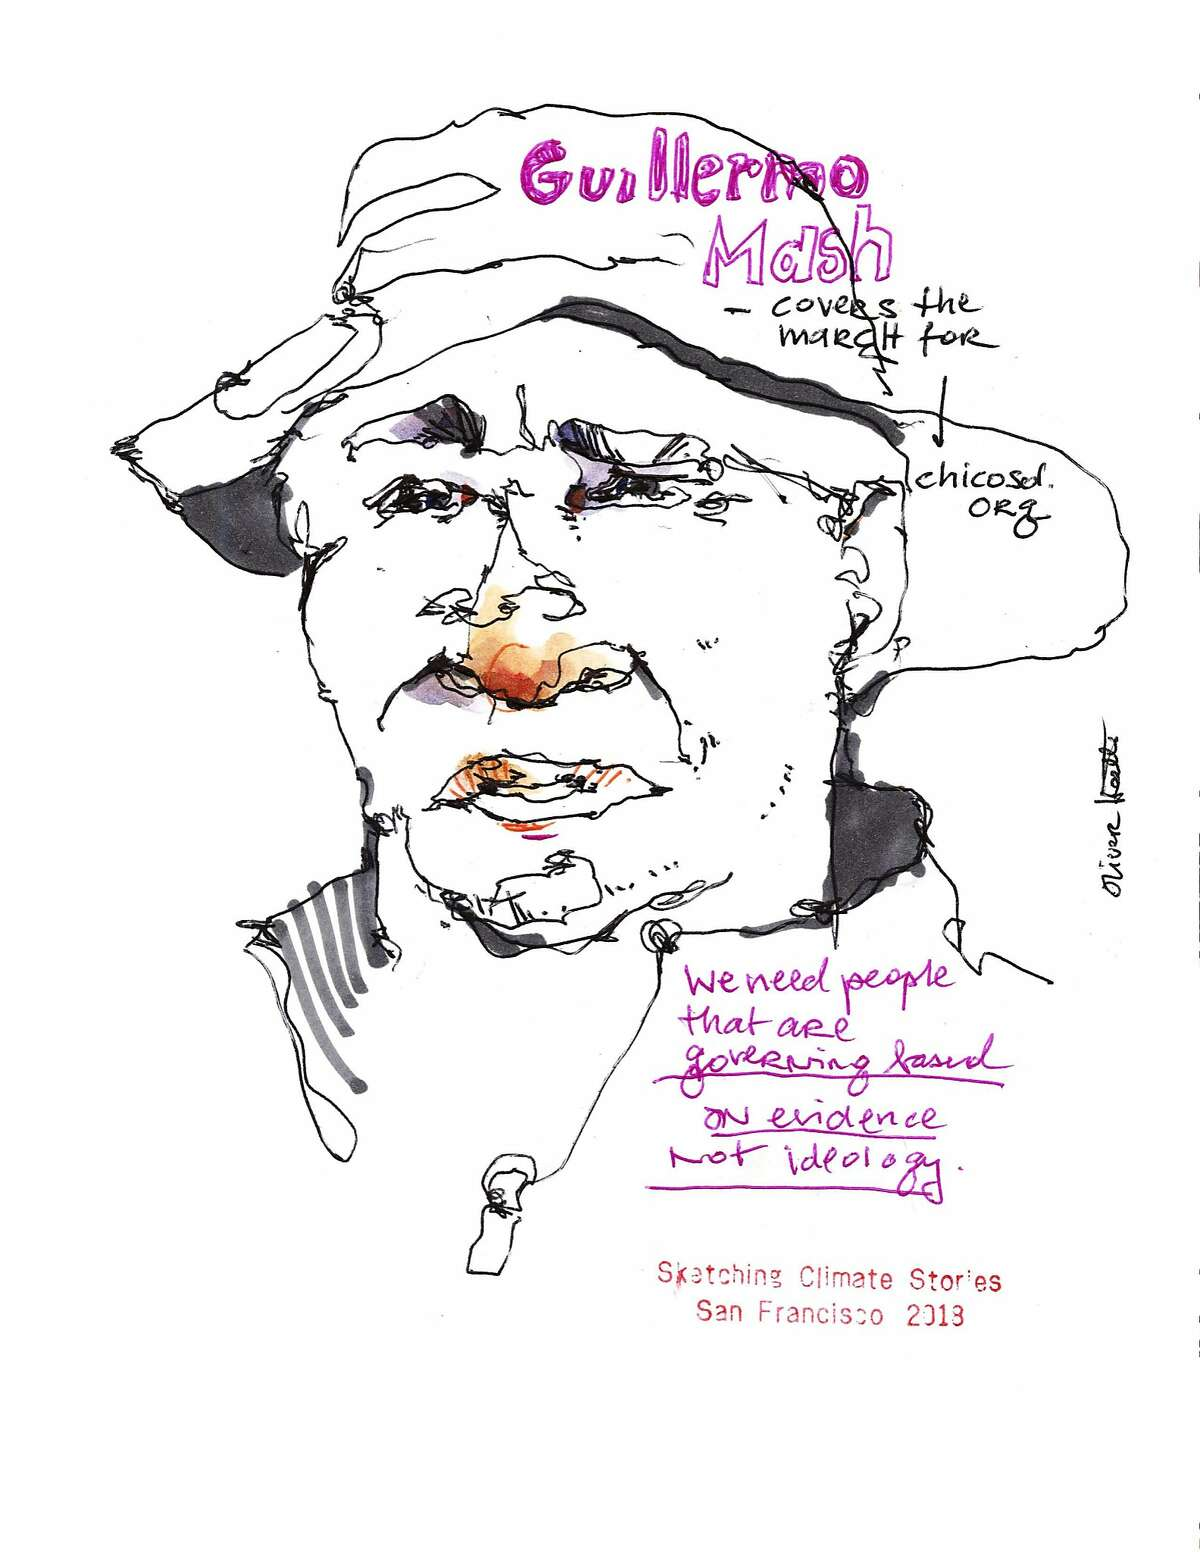 Sketch Title: Guillermo Mash: Govern on the Evidence Artist Name: Oliver Hoeller Caption: Guillermo Mash covers the March for Chico Sol News. �We need people that are governing based on evidence than ideology.�